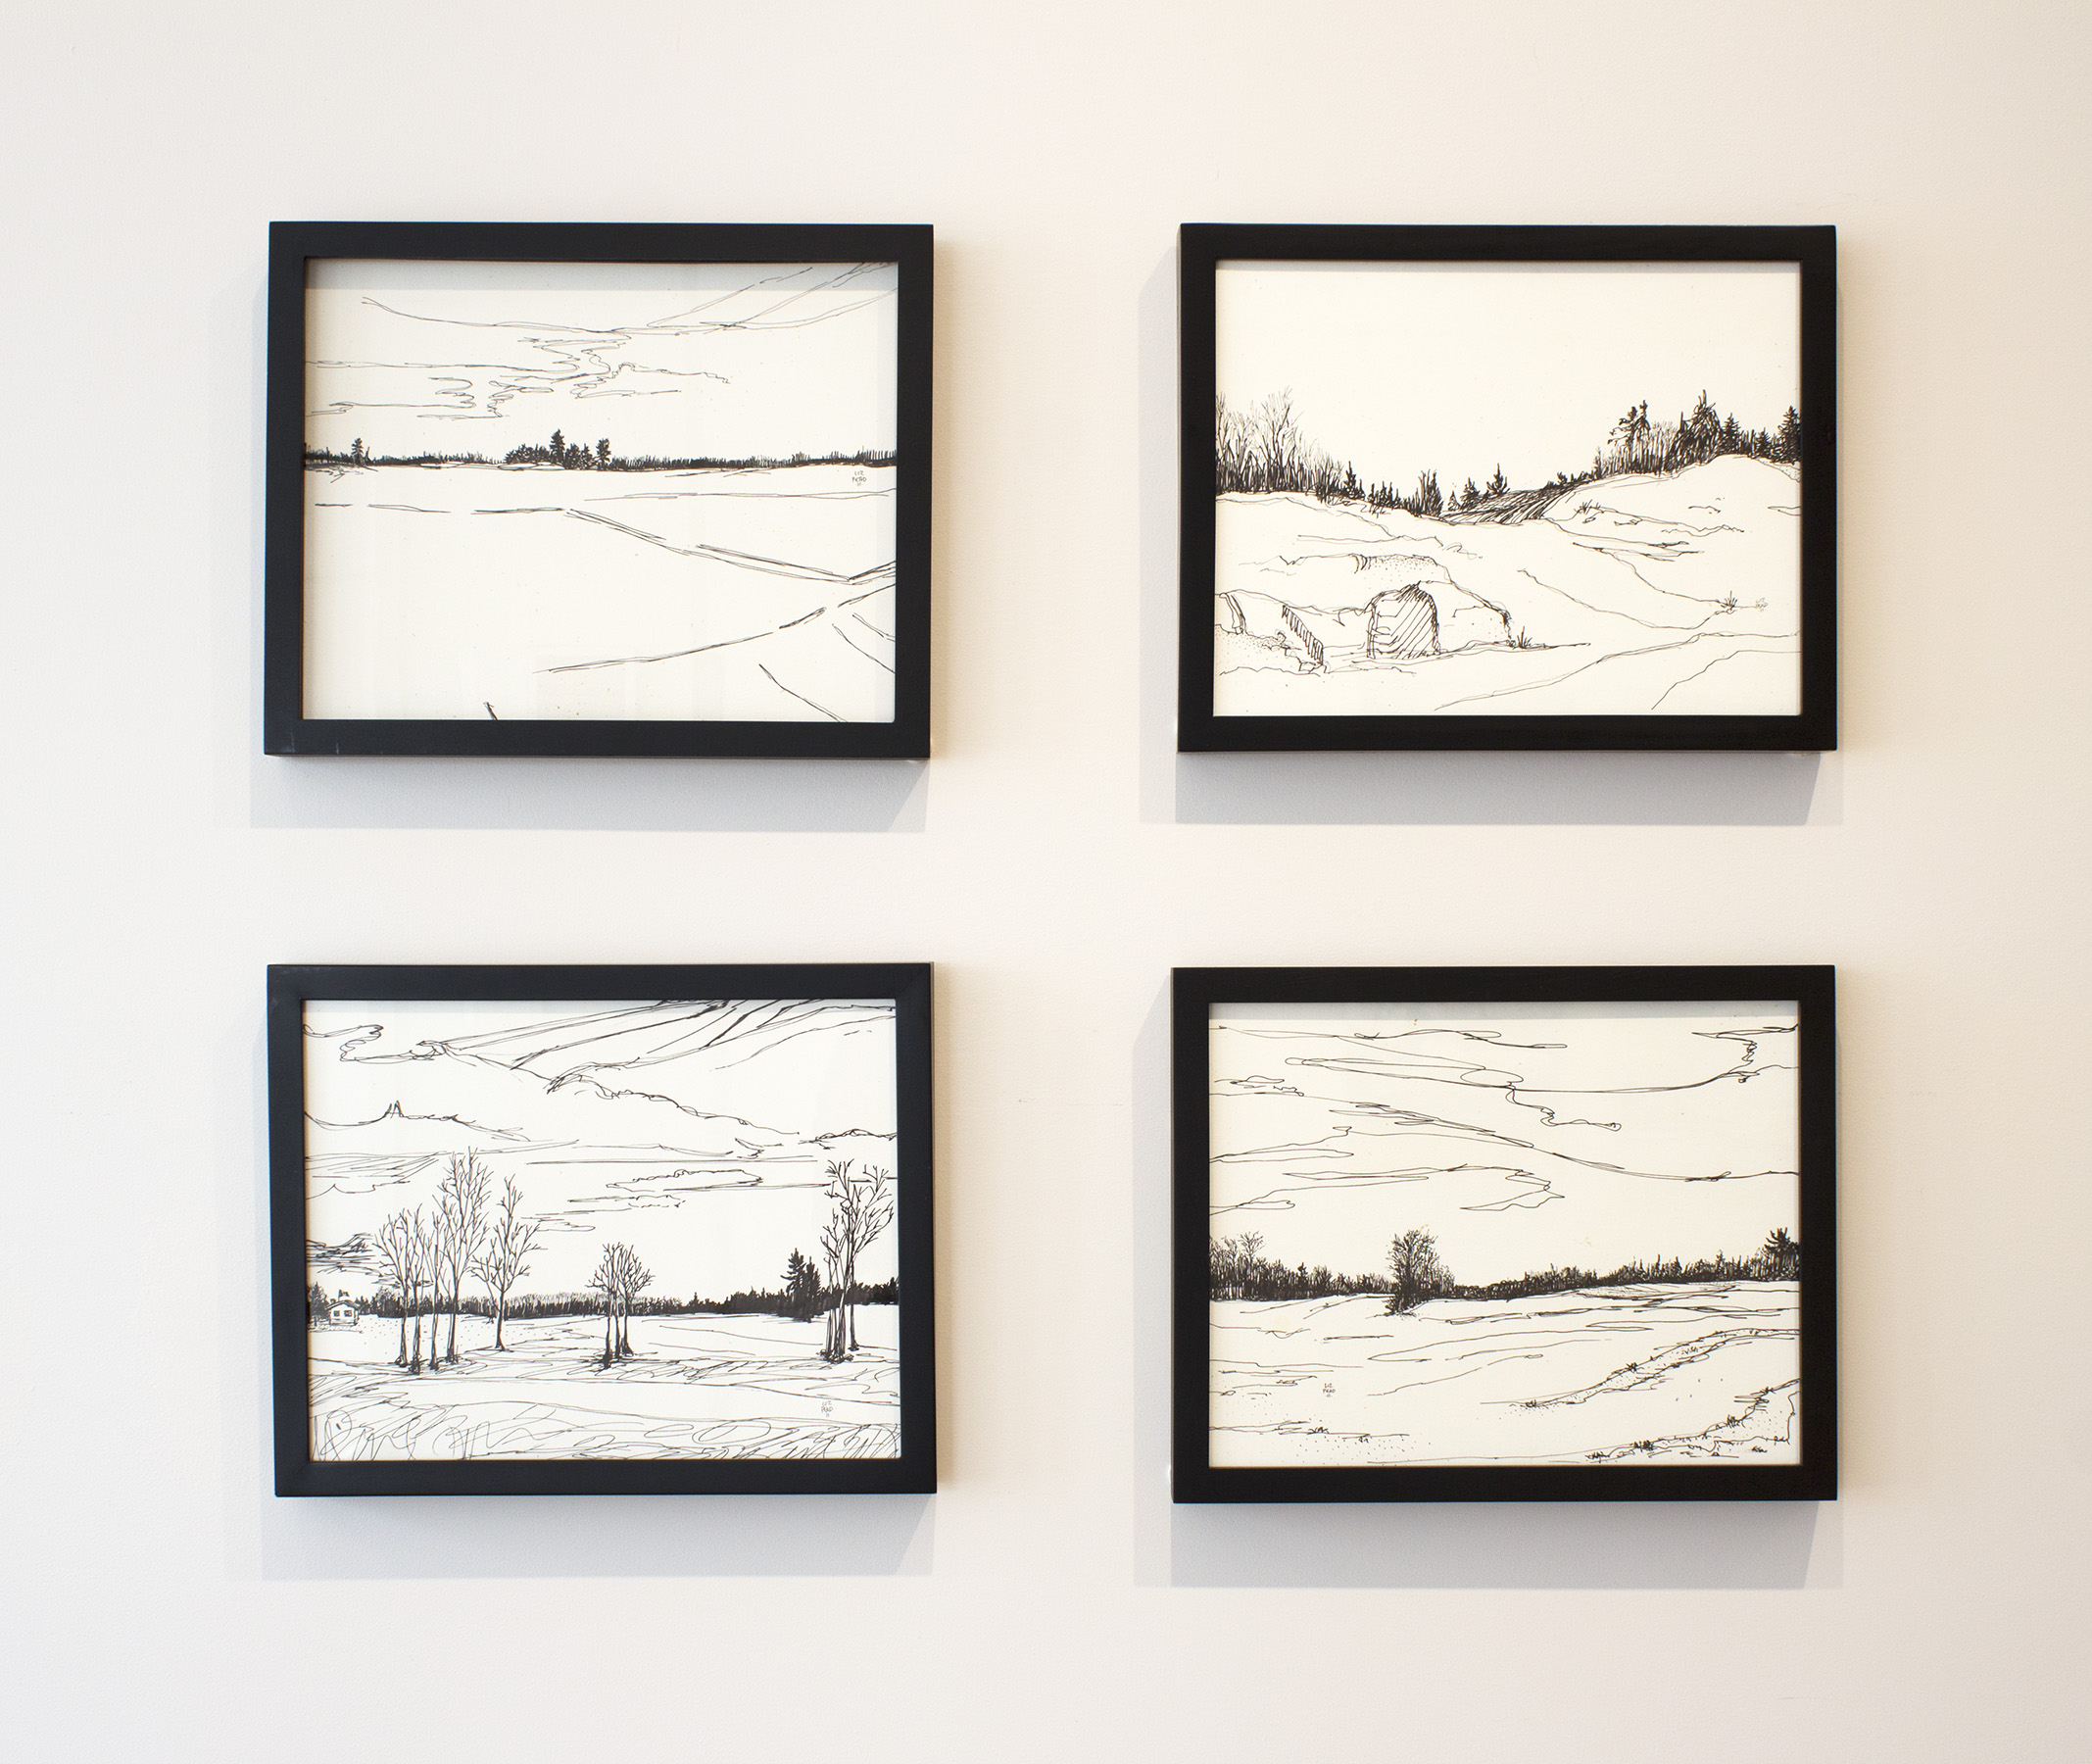 Liz Pead,  Ink Drawings  as part of the  Exploring Landcapes  exhibition in collaboration with the Kawartha Yarn & Fibre Festival